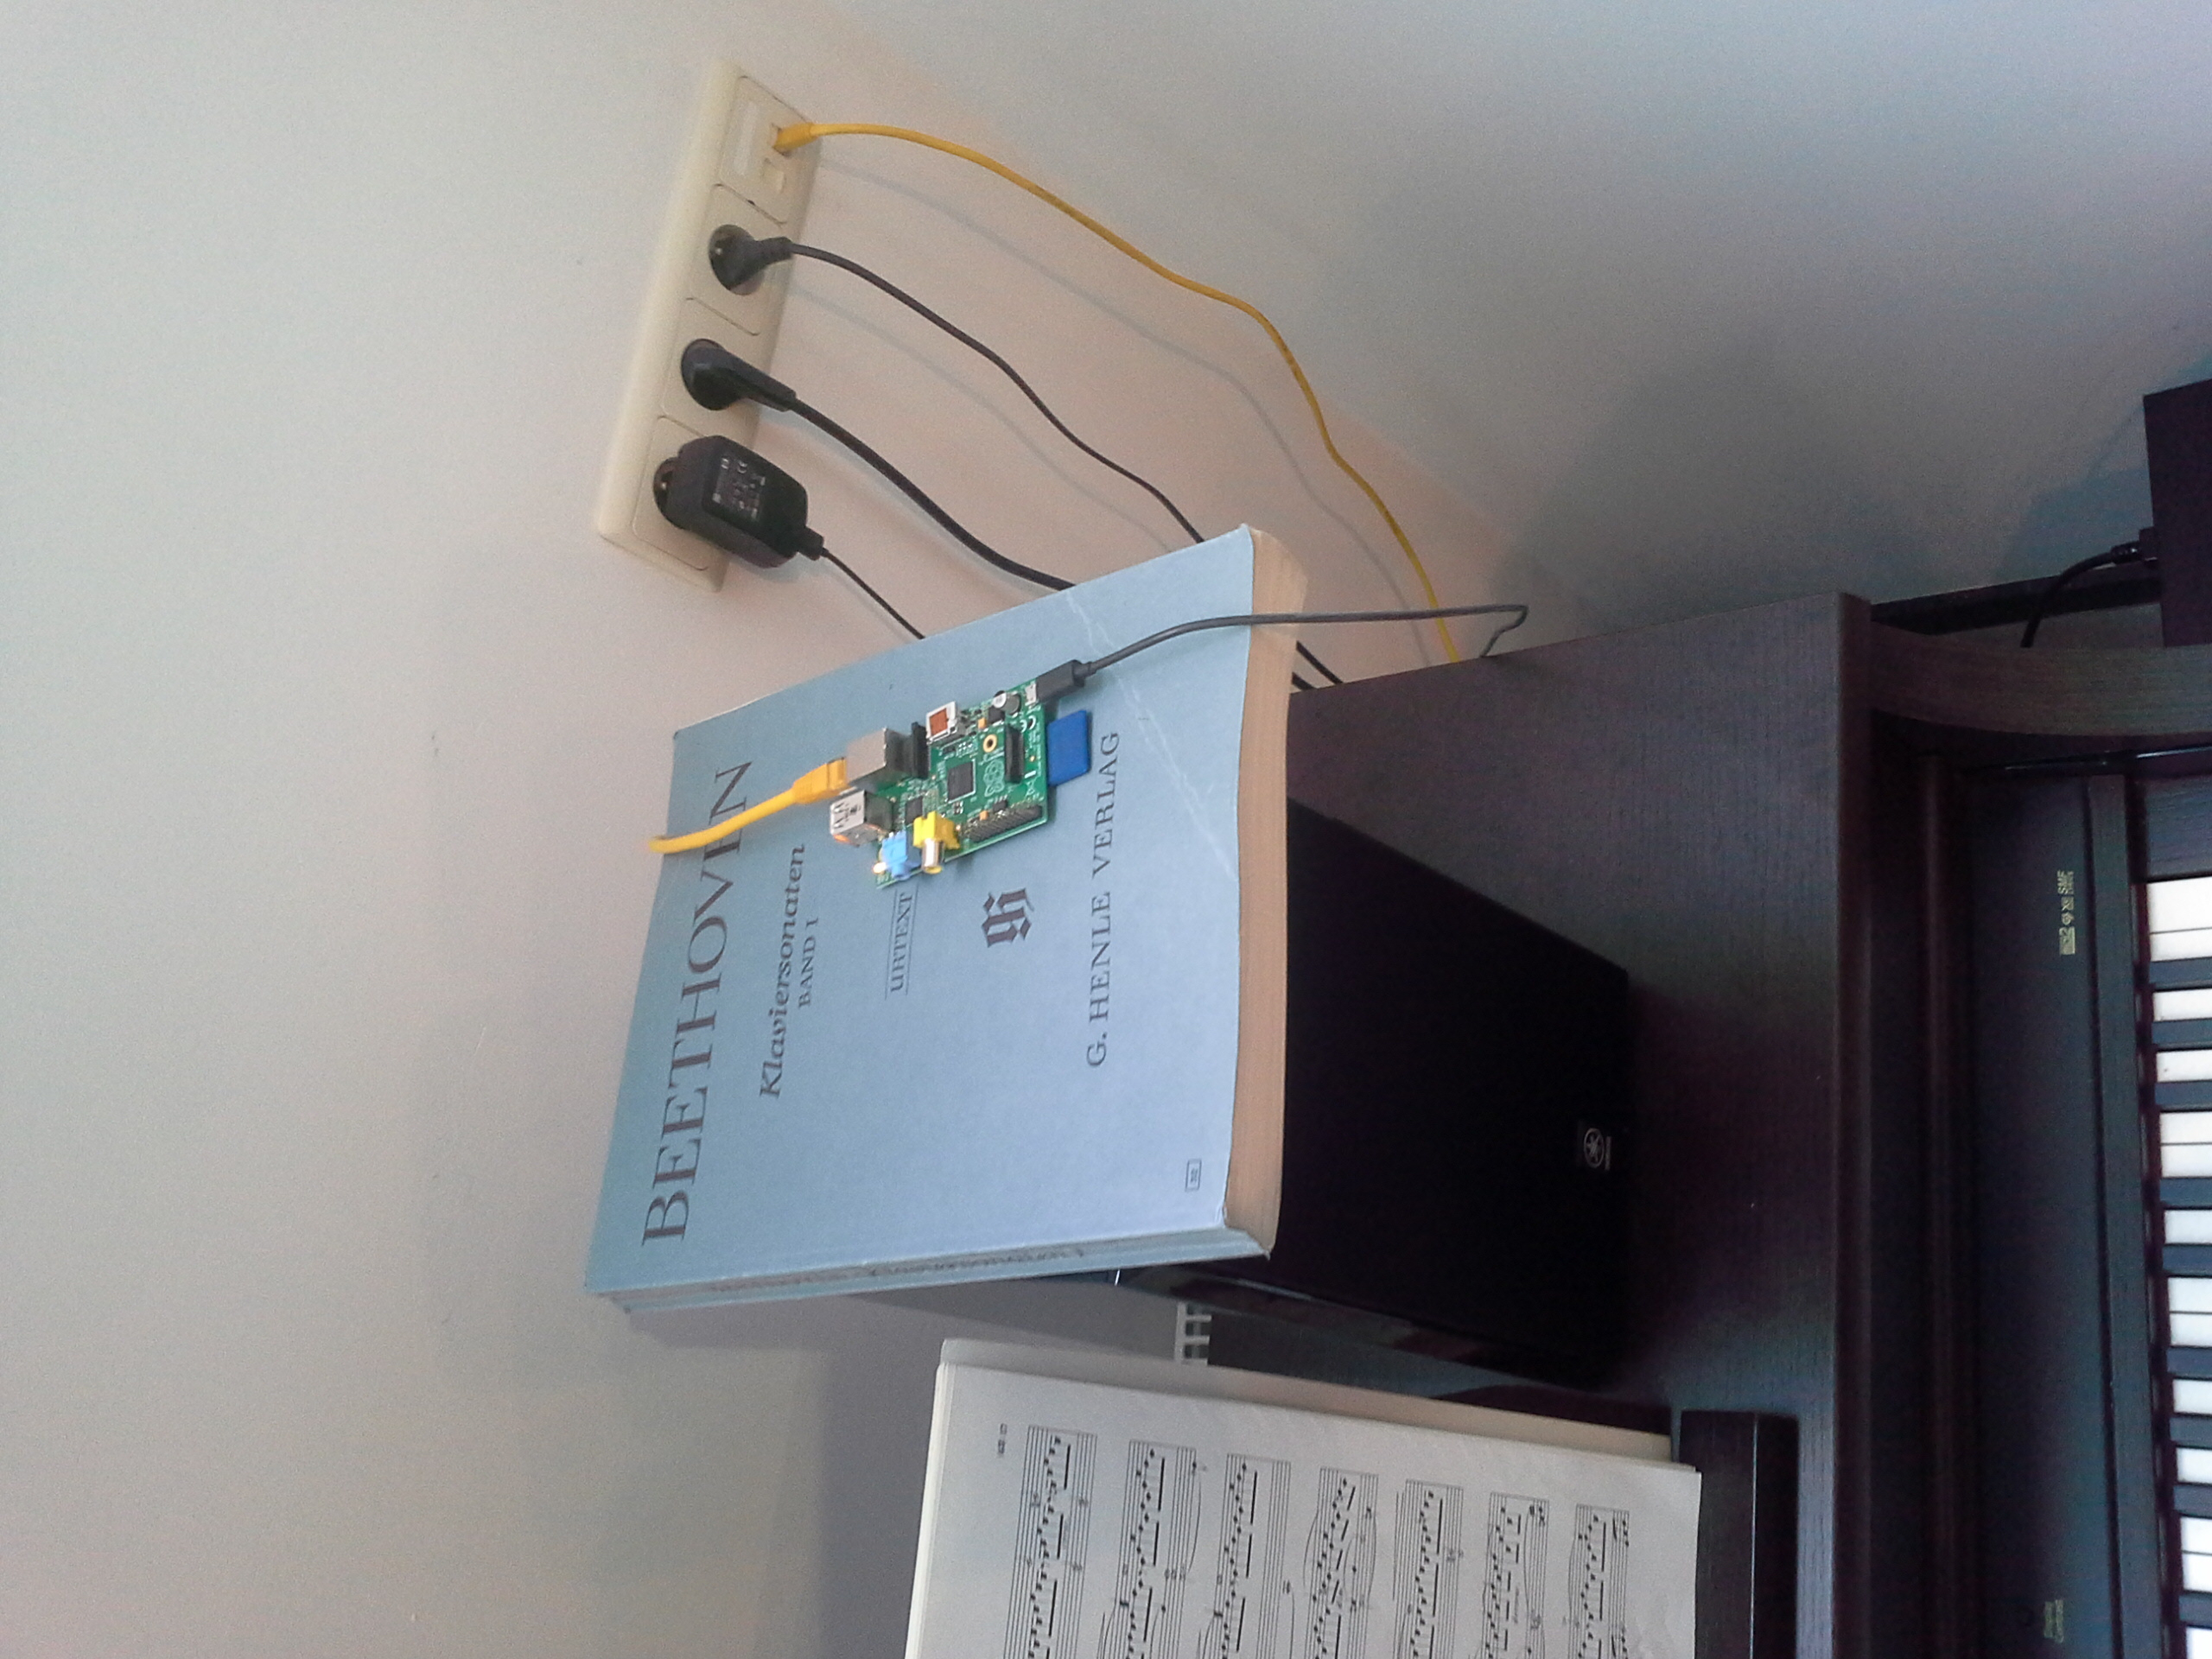 My raspberry pi at home